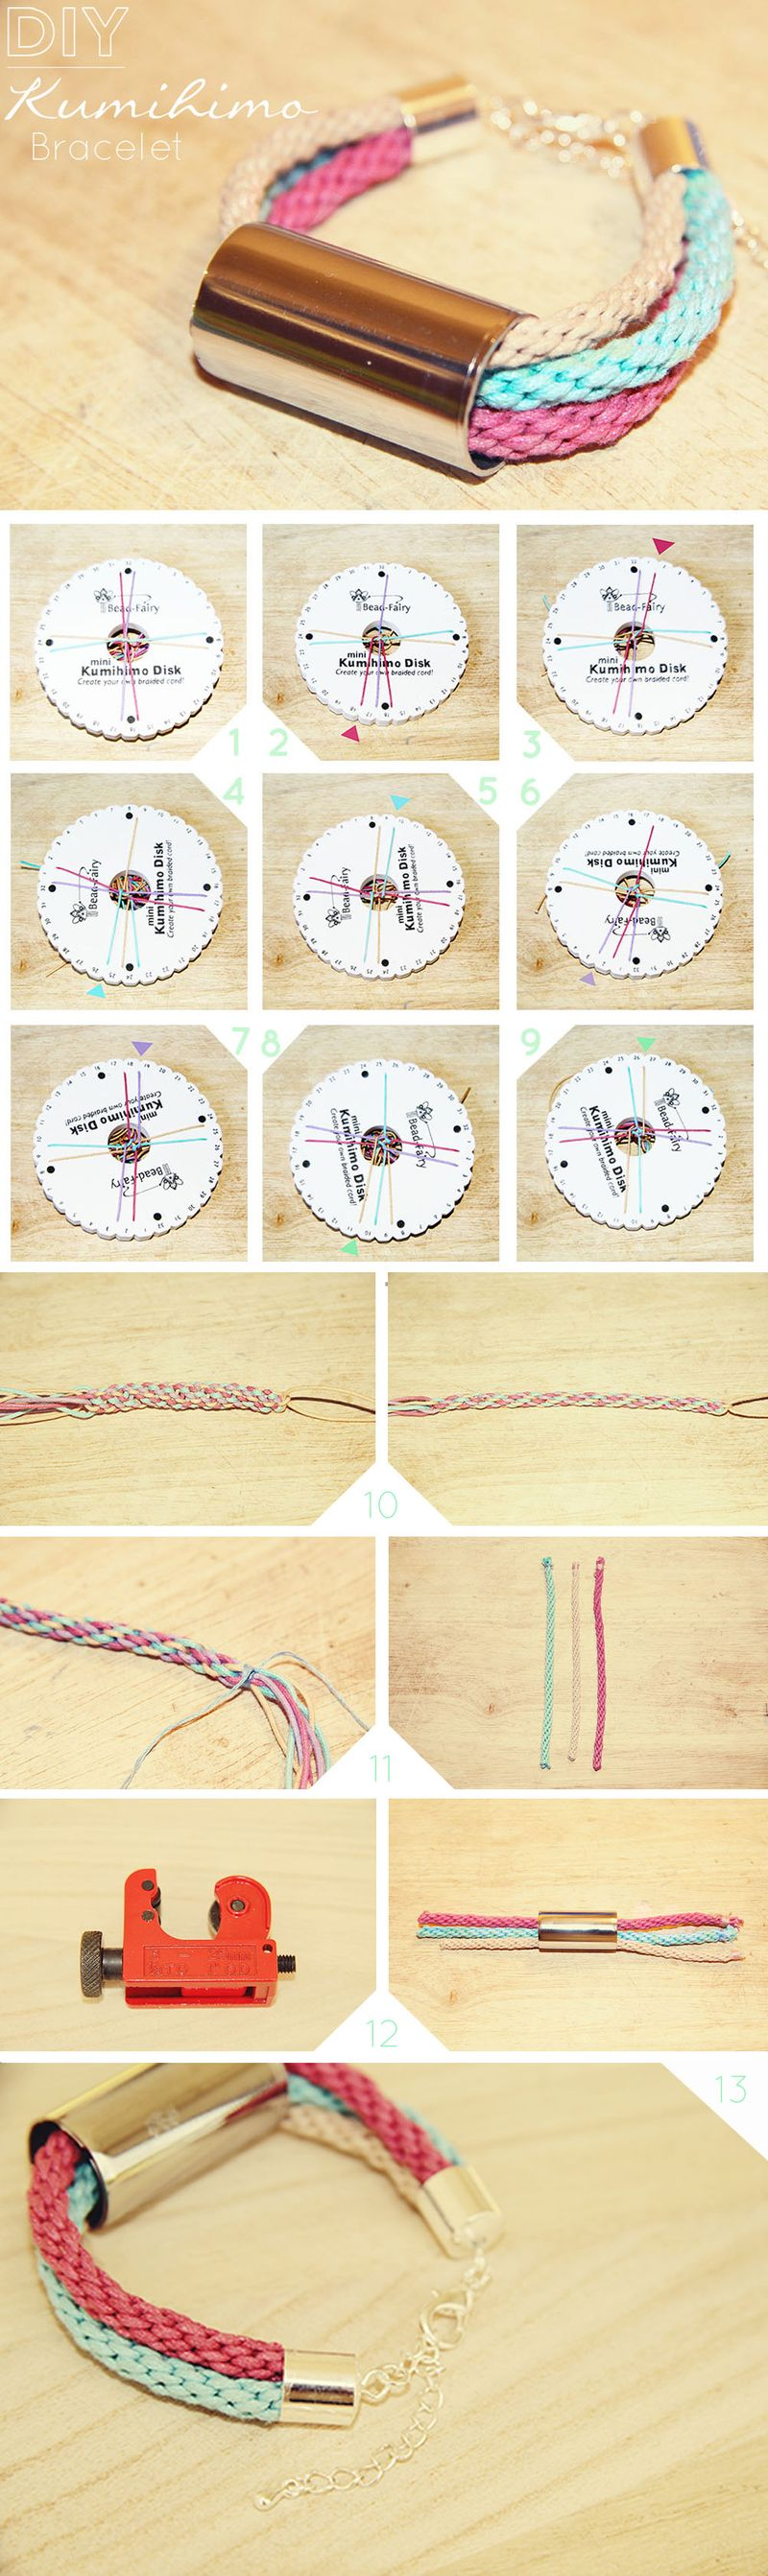 Diy kumihimo bracelet fall for